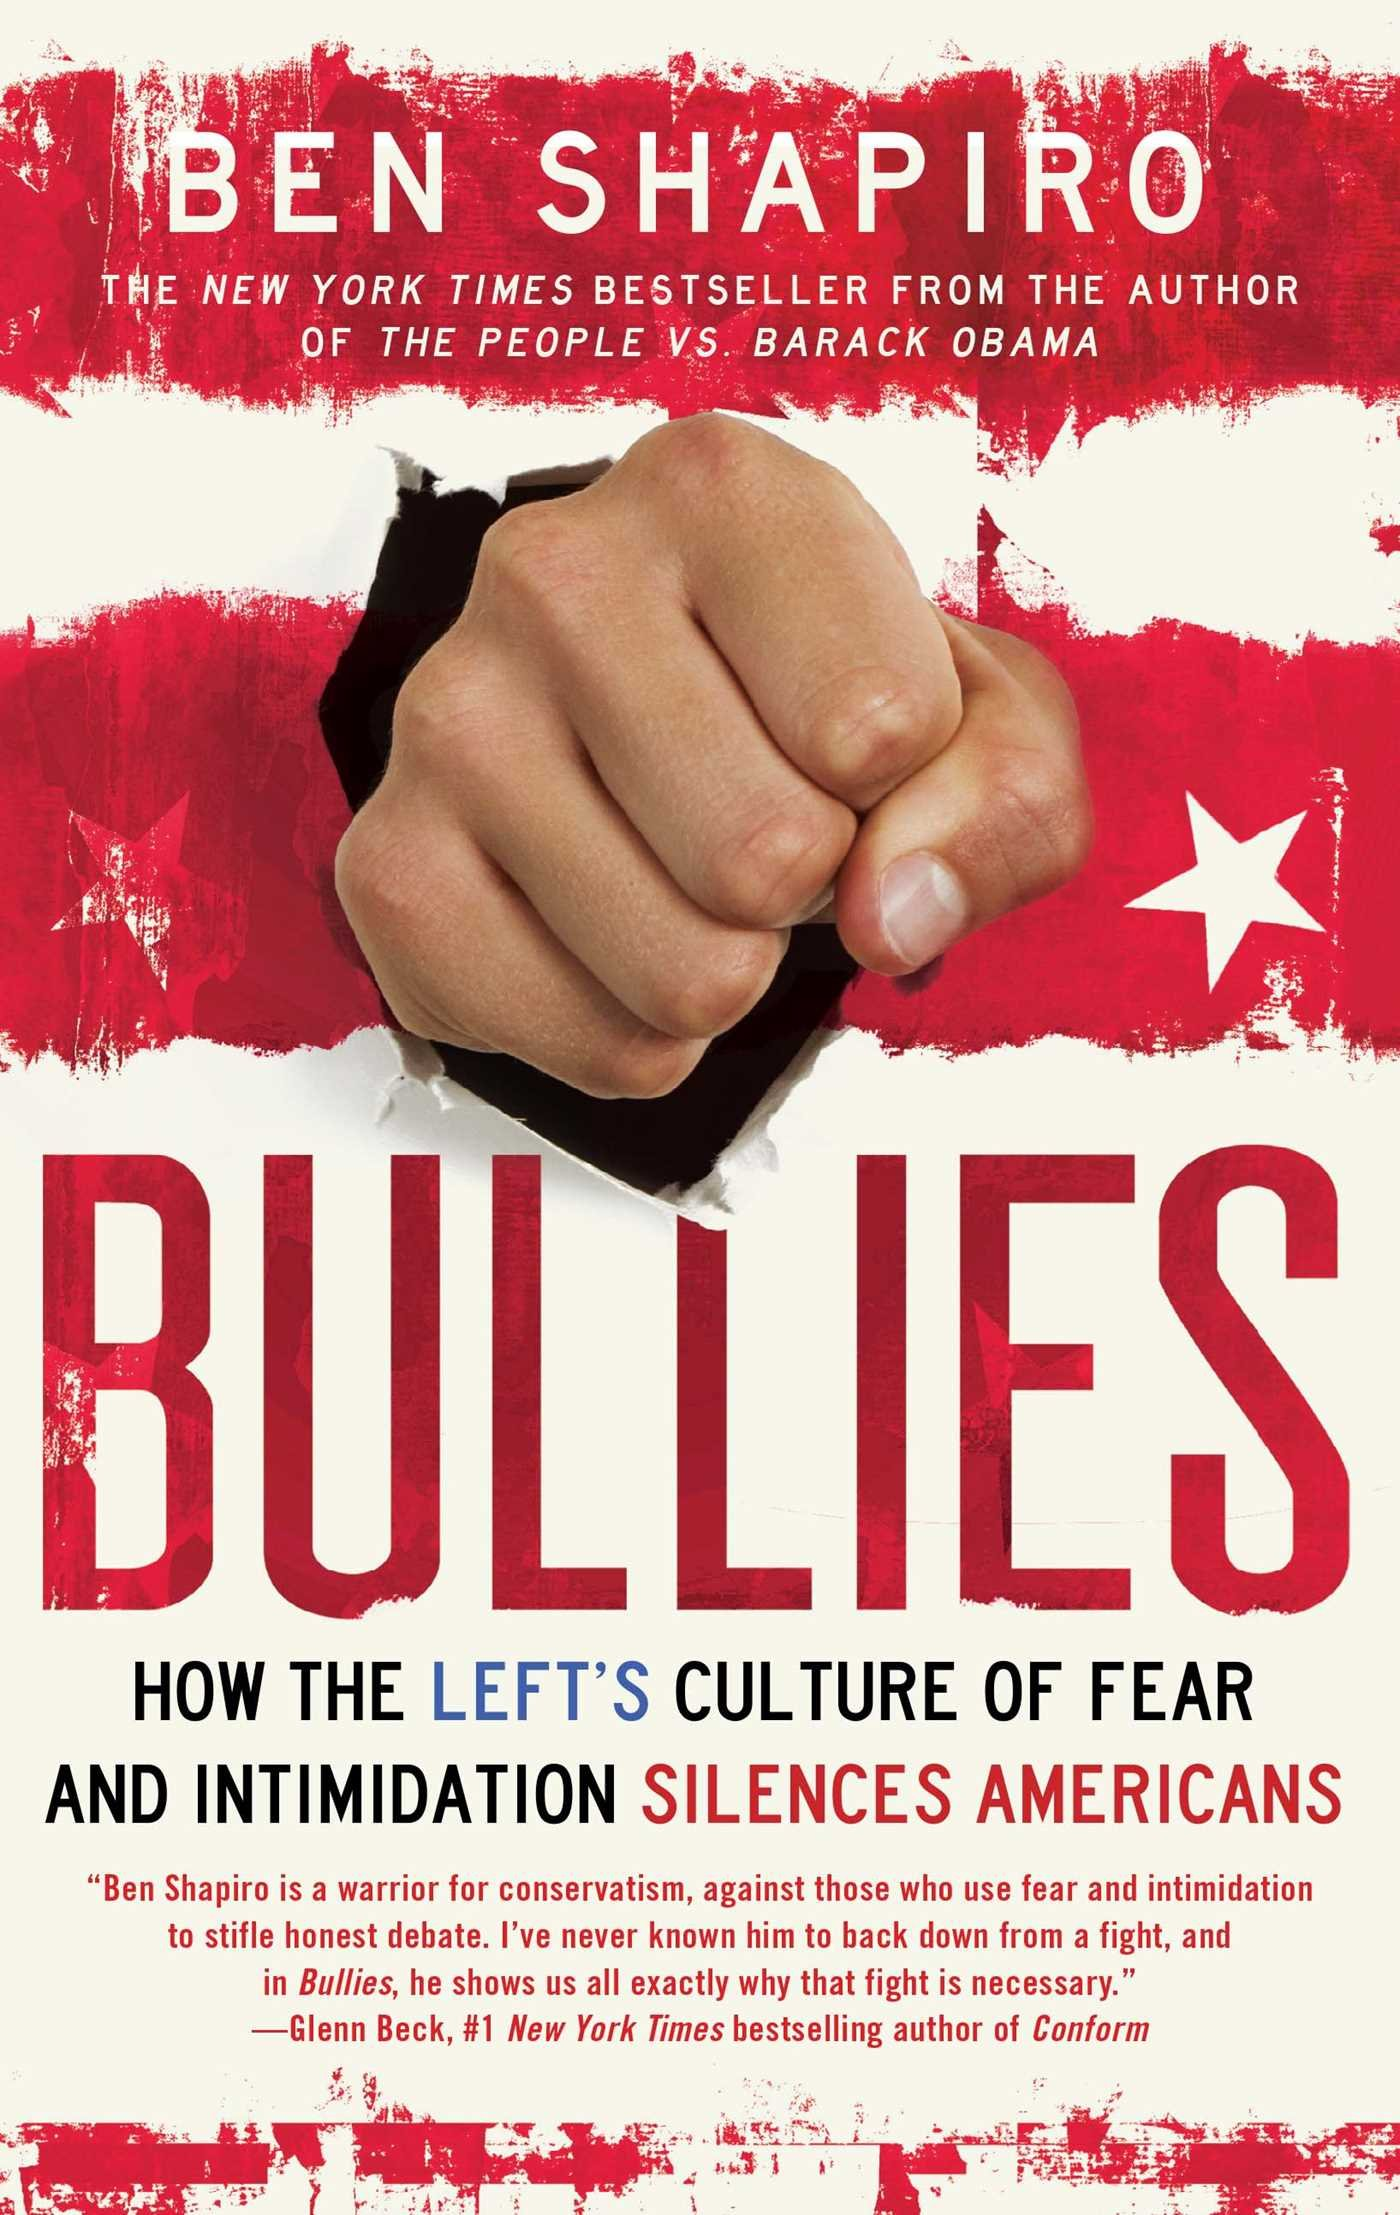 Bullies: How the Lefts Culture of Fear and Intimidation Silences Americans: Amazon.es: Ben Shapiro: Libros en idiomas extranjeros